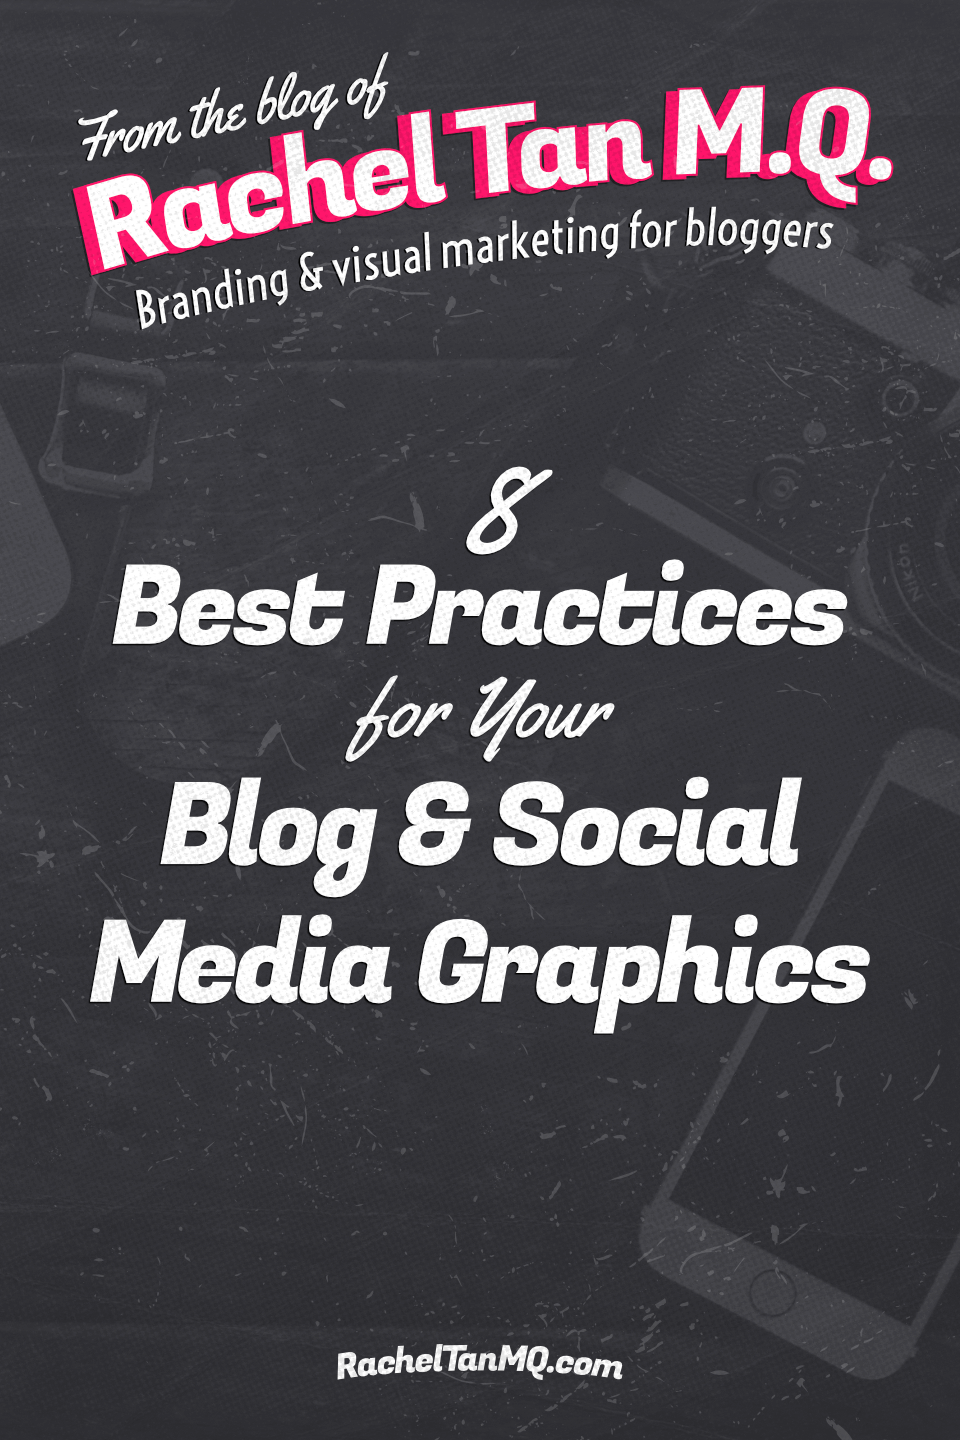 Looking for tips on how to design blog graphics that get shit-tons of clicks on social media? This post is for you! • graphic design tips   graphic design tutorials   visual marketing   how to promote your blog on pinterest   how to promote your blog on instagram   pinterest tips for bloggers   instagram tips for bloggers #visualmarketing #pinteresttips #instagramtips #pinterestmarketing #instagrammarketing #socialmediagraphics #bloggraphics #bloggingtips #graphicdesigntips